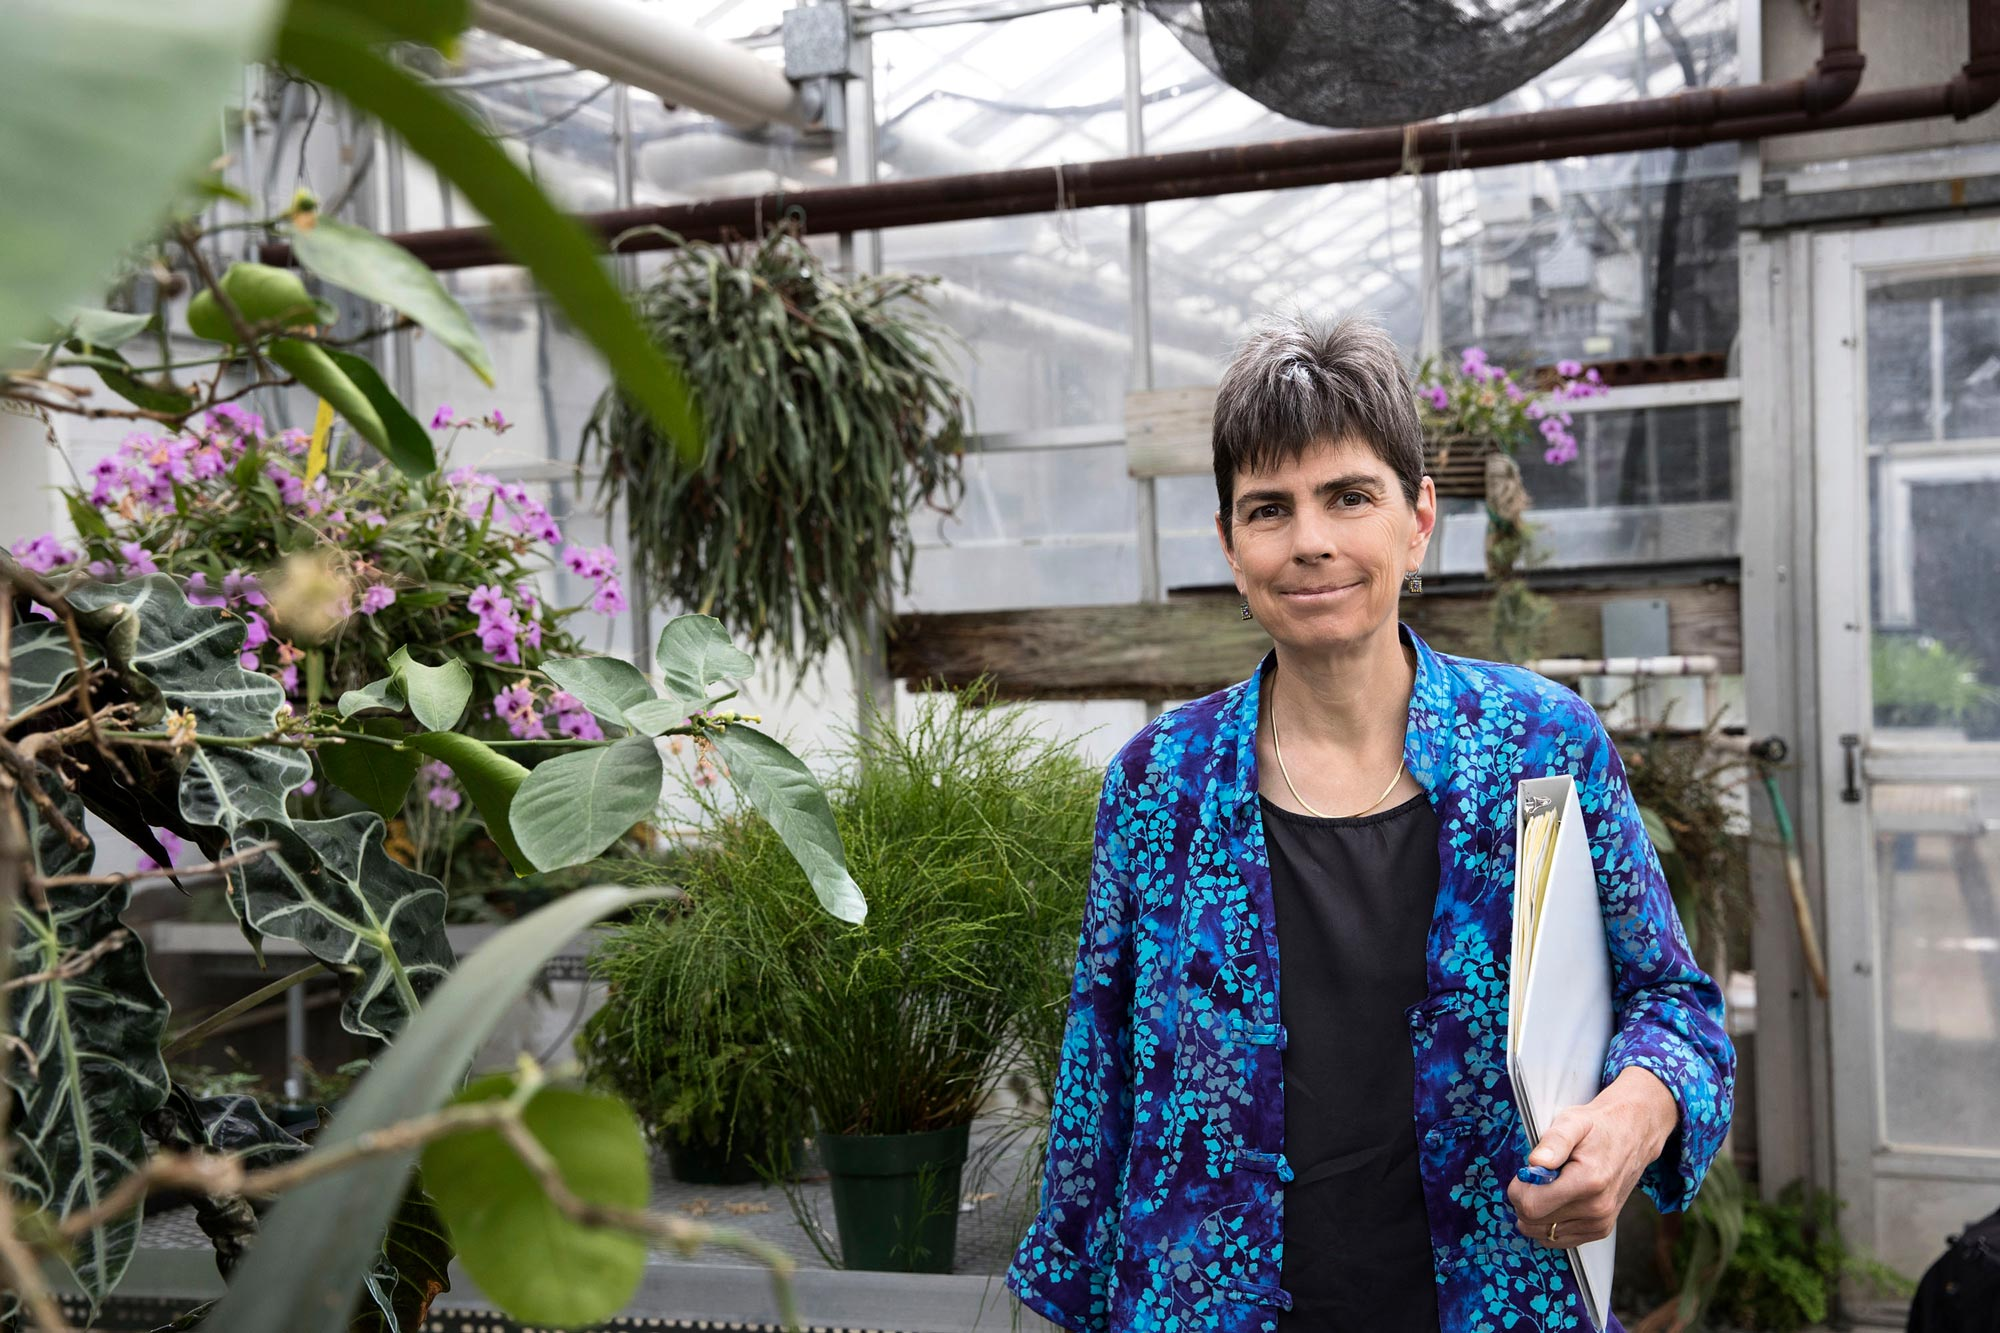 Biology professor, Laura Galloway, who explores evolutionary change in plants, co-authored the study.